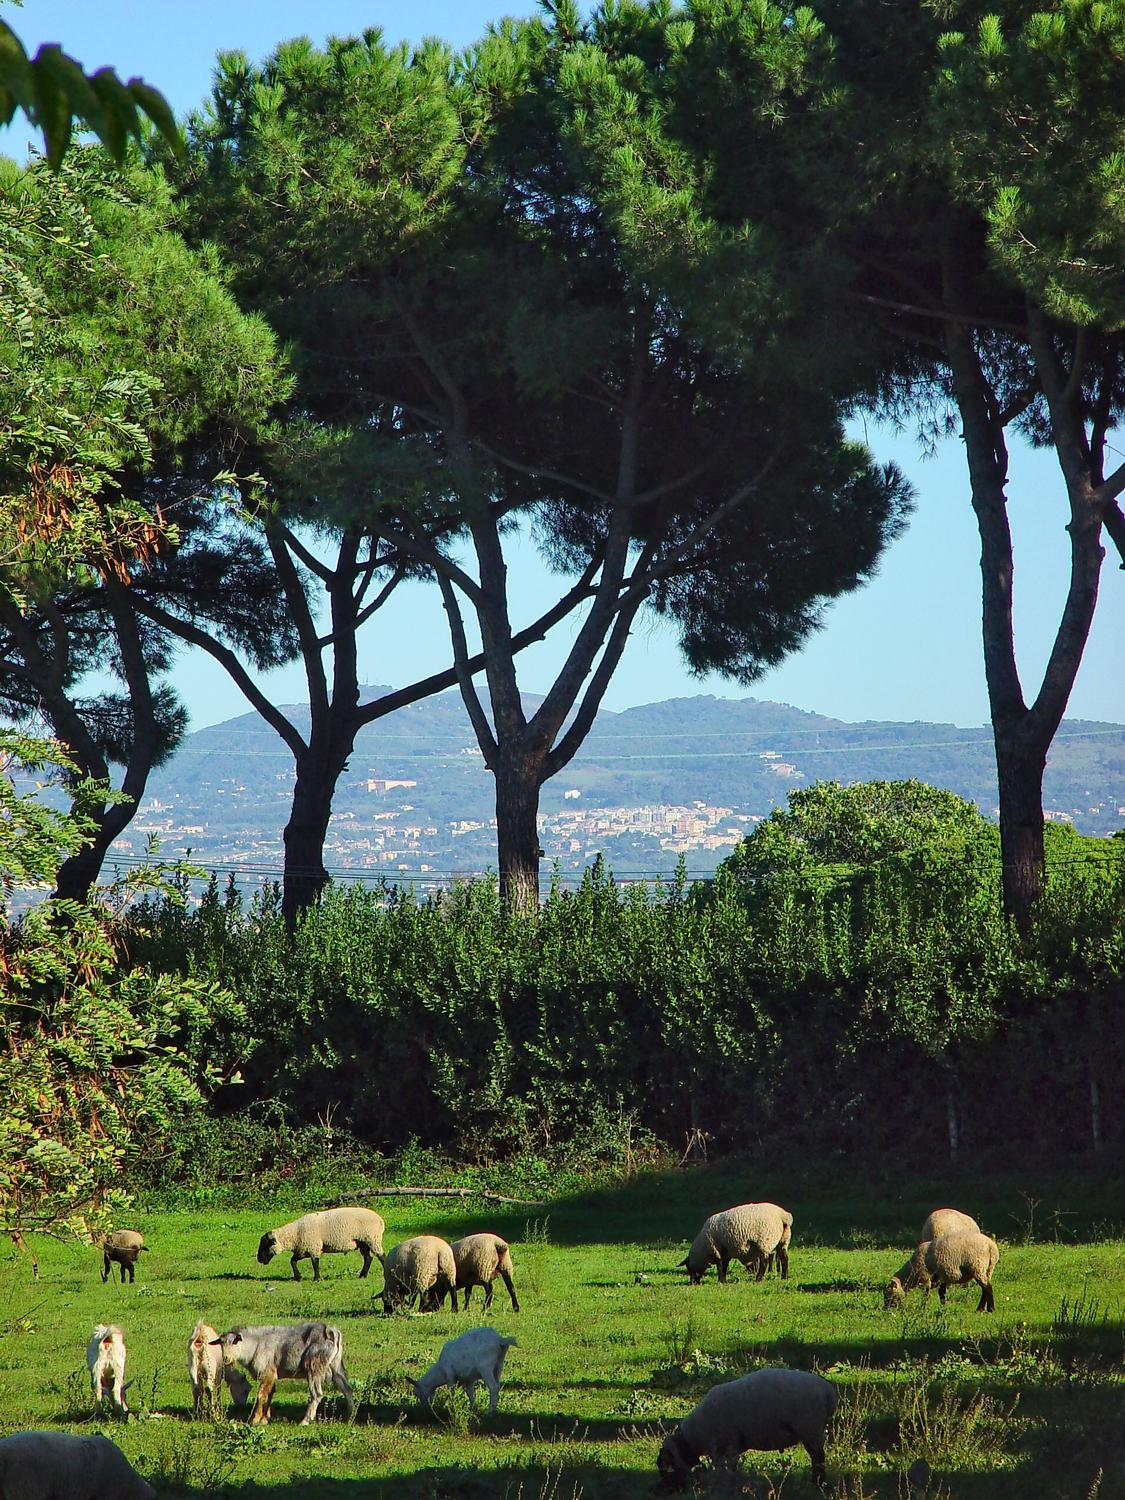 - Sheep in Rome? Yup. We saw this little farm along the Via Appia Antica. Note the characteristic umbrella shape of the stone pine trees in the background. - - Italian Stone Pine Tree - Umbrella Pine - Pinus Pinea - - Tony Karp, design, art, photography, techno-impressionist, techno-impressionism, aerial photography , drone , drones , dji , mavic pro , video , 3D printing - Books -